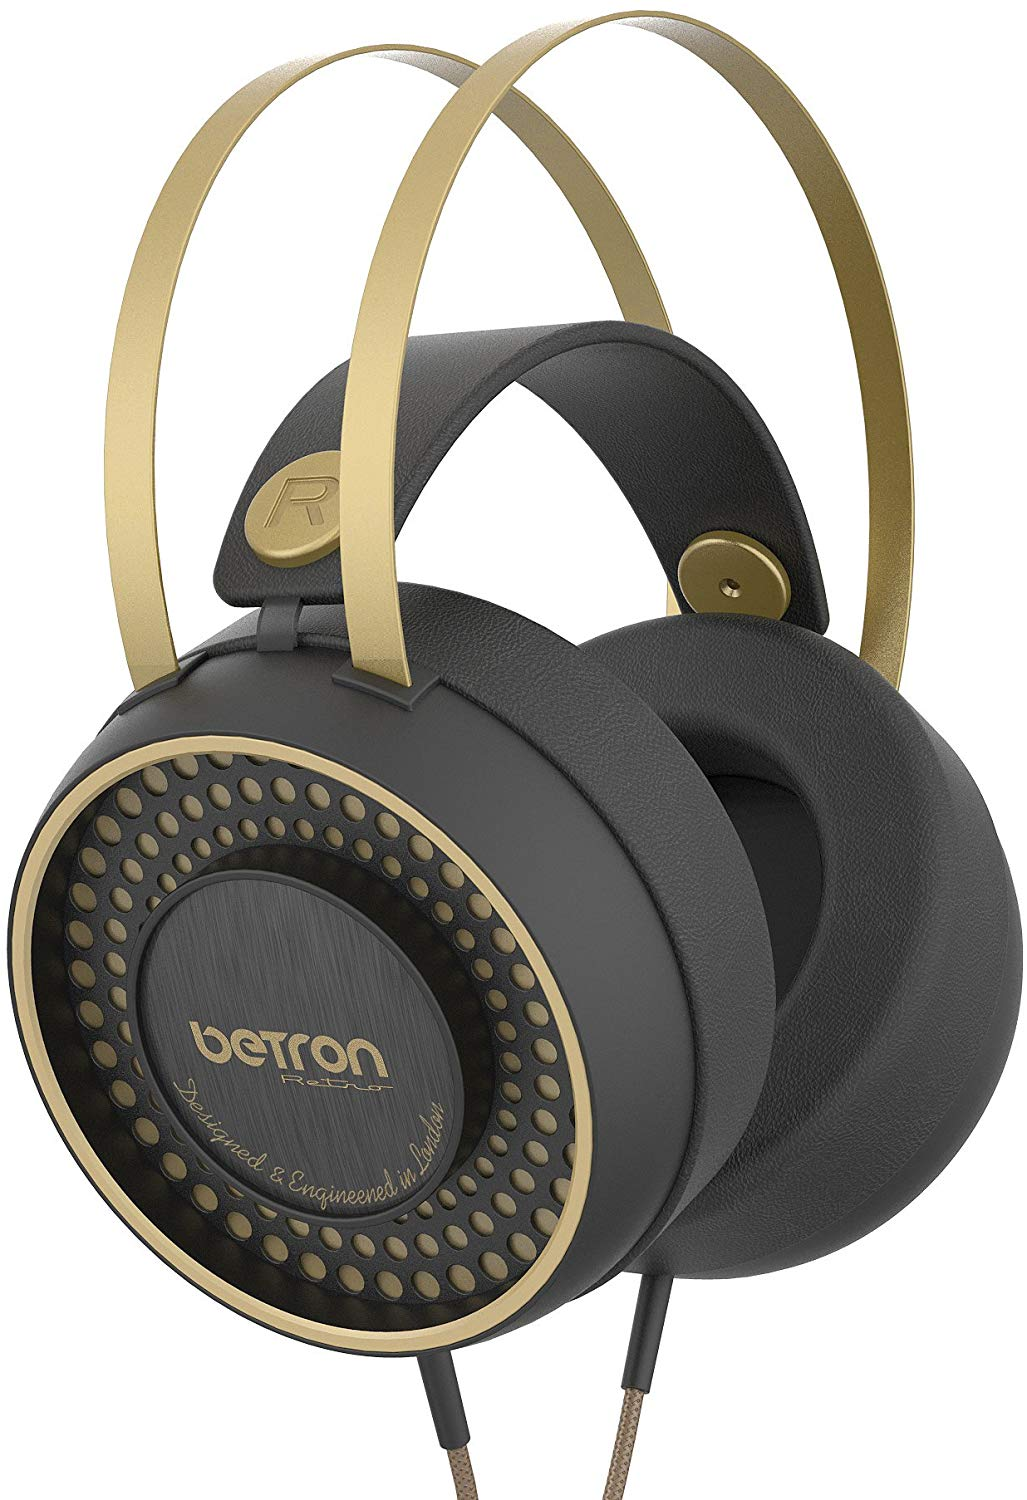 Betron Retro Over Ear Headphones Bass Driven Sound